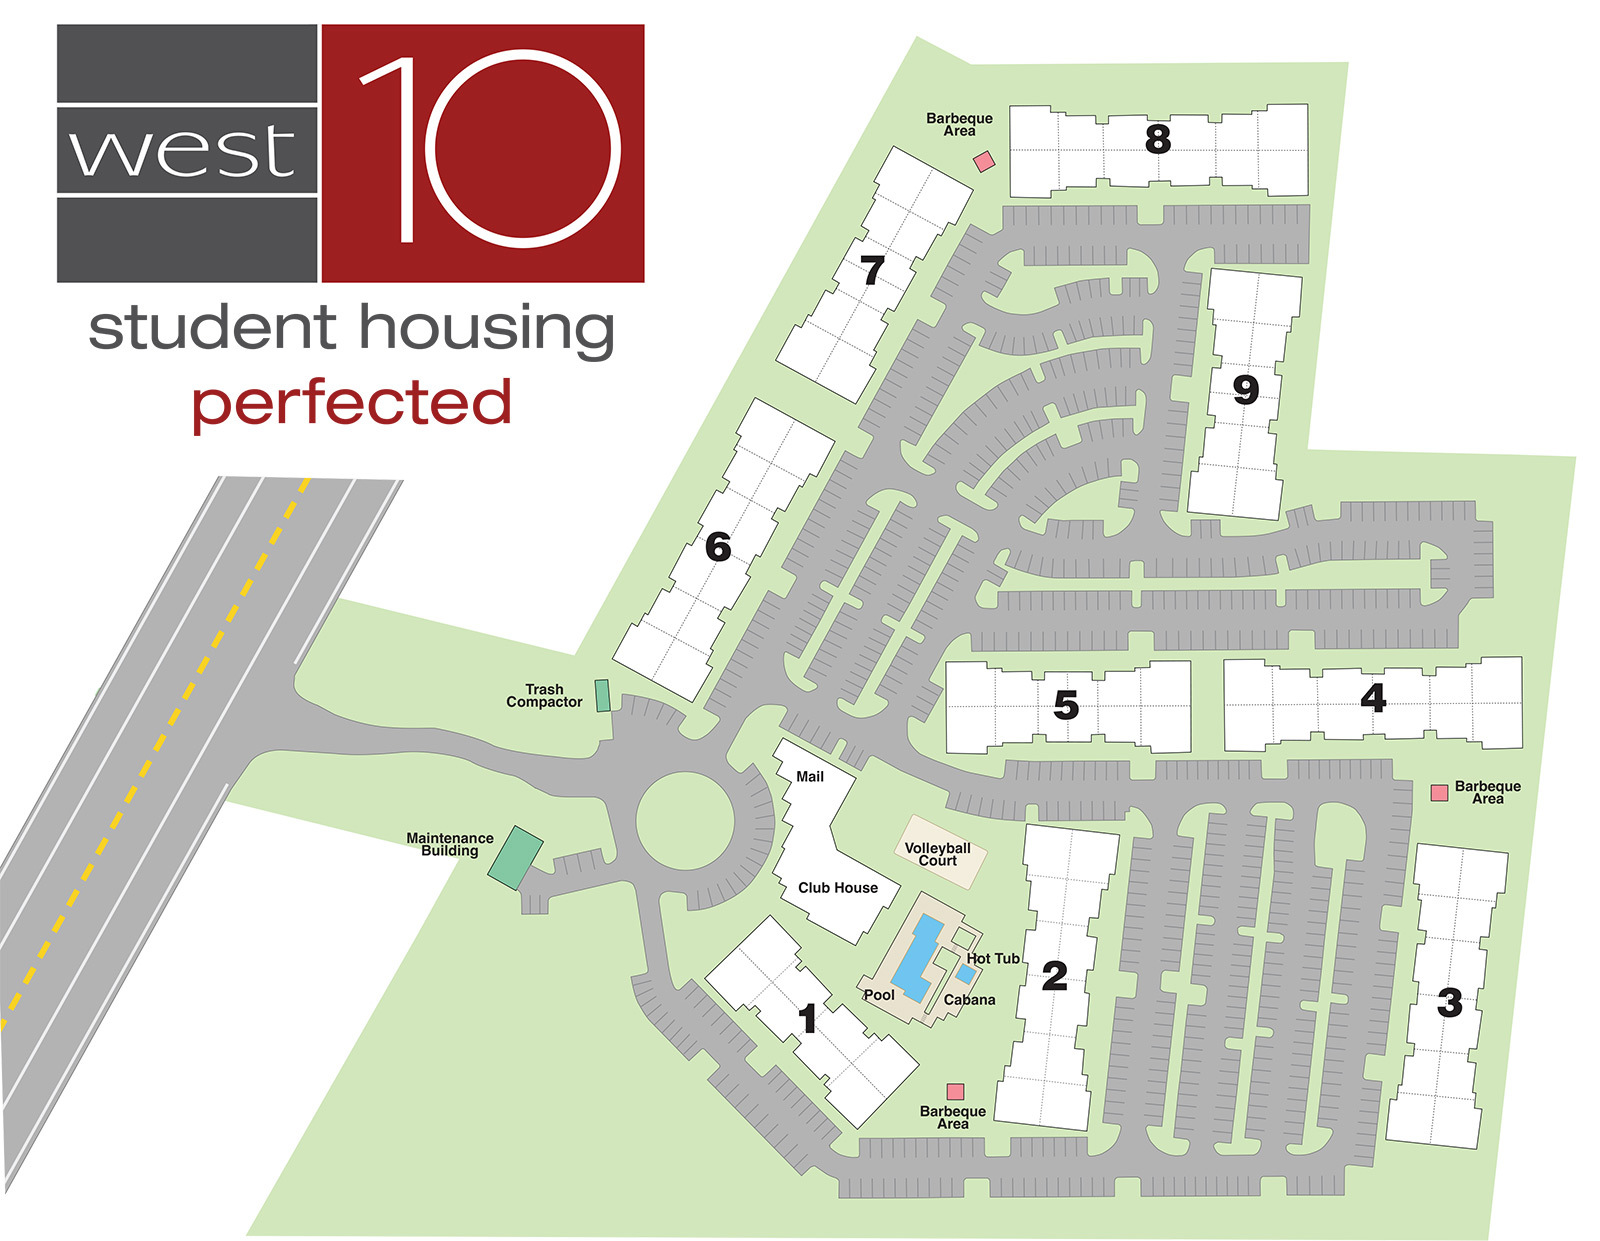 West10 Community Site Map